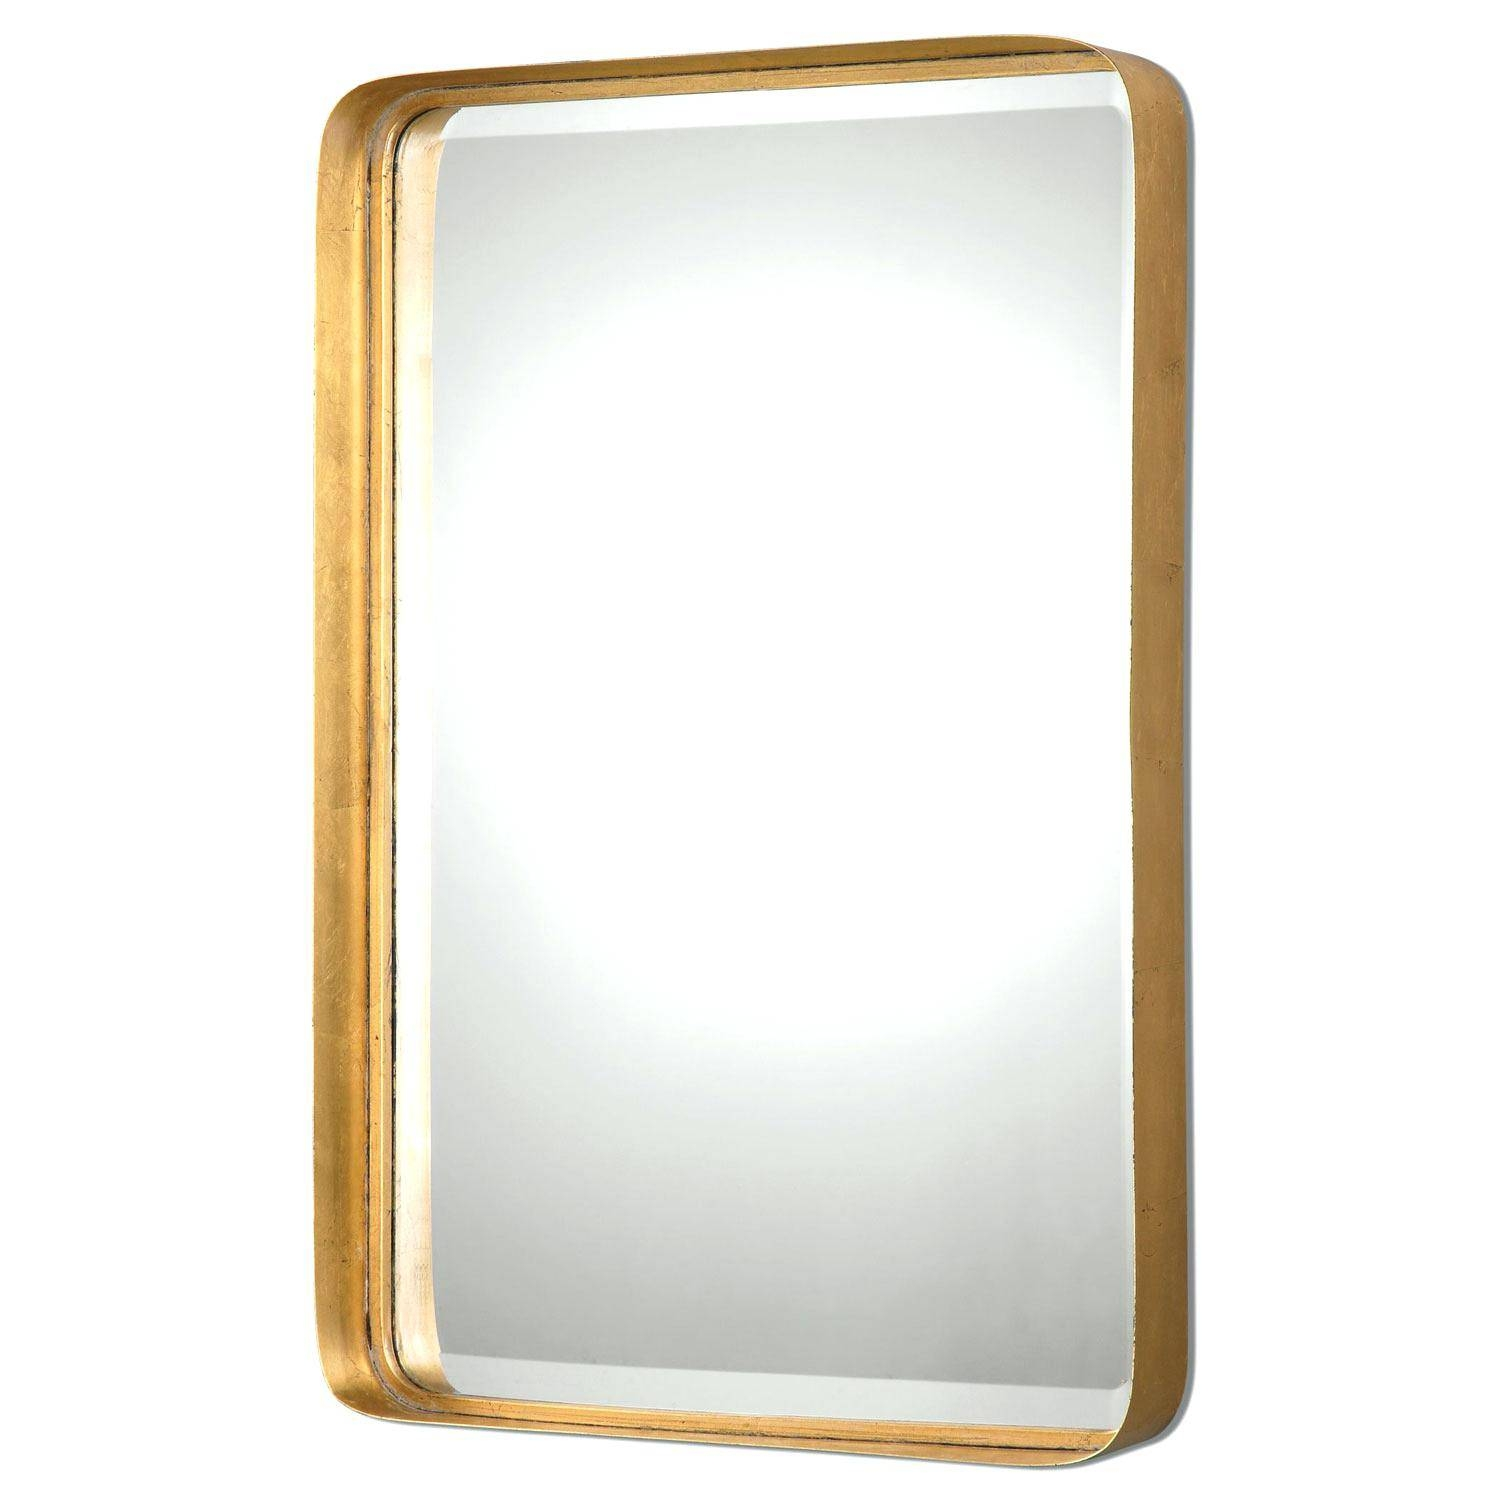 Impressive Design Gold Wall Mirrors Homey Ideas Marina Framed regarding Modern Gold Mirrors (Image 13 of 25)